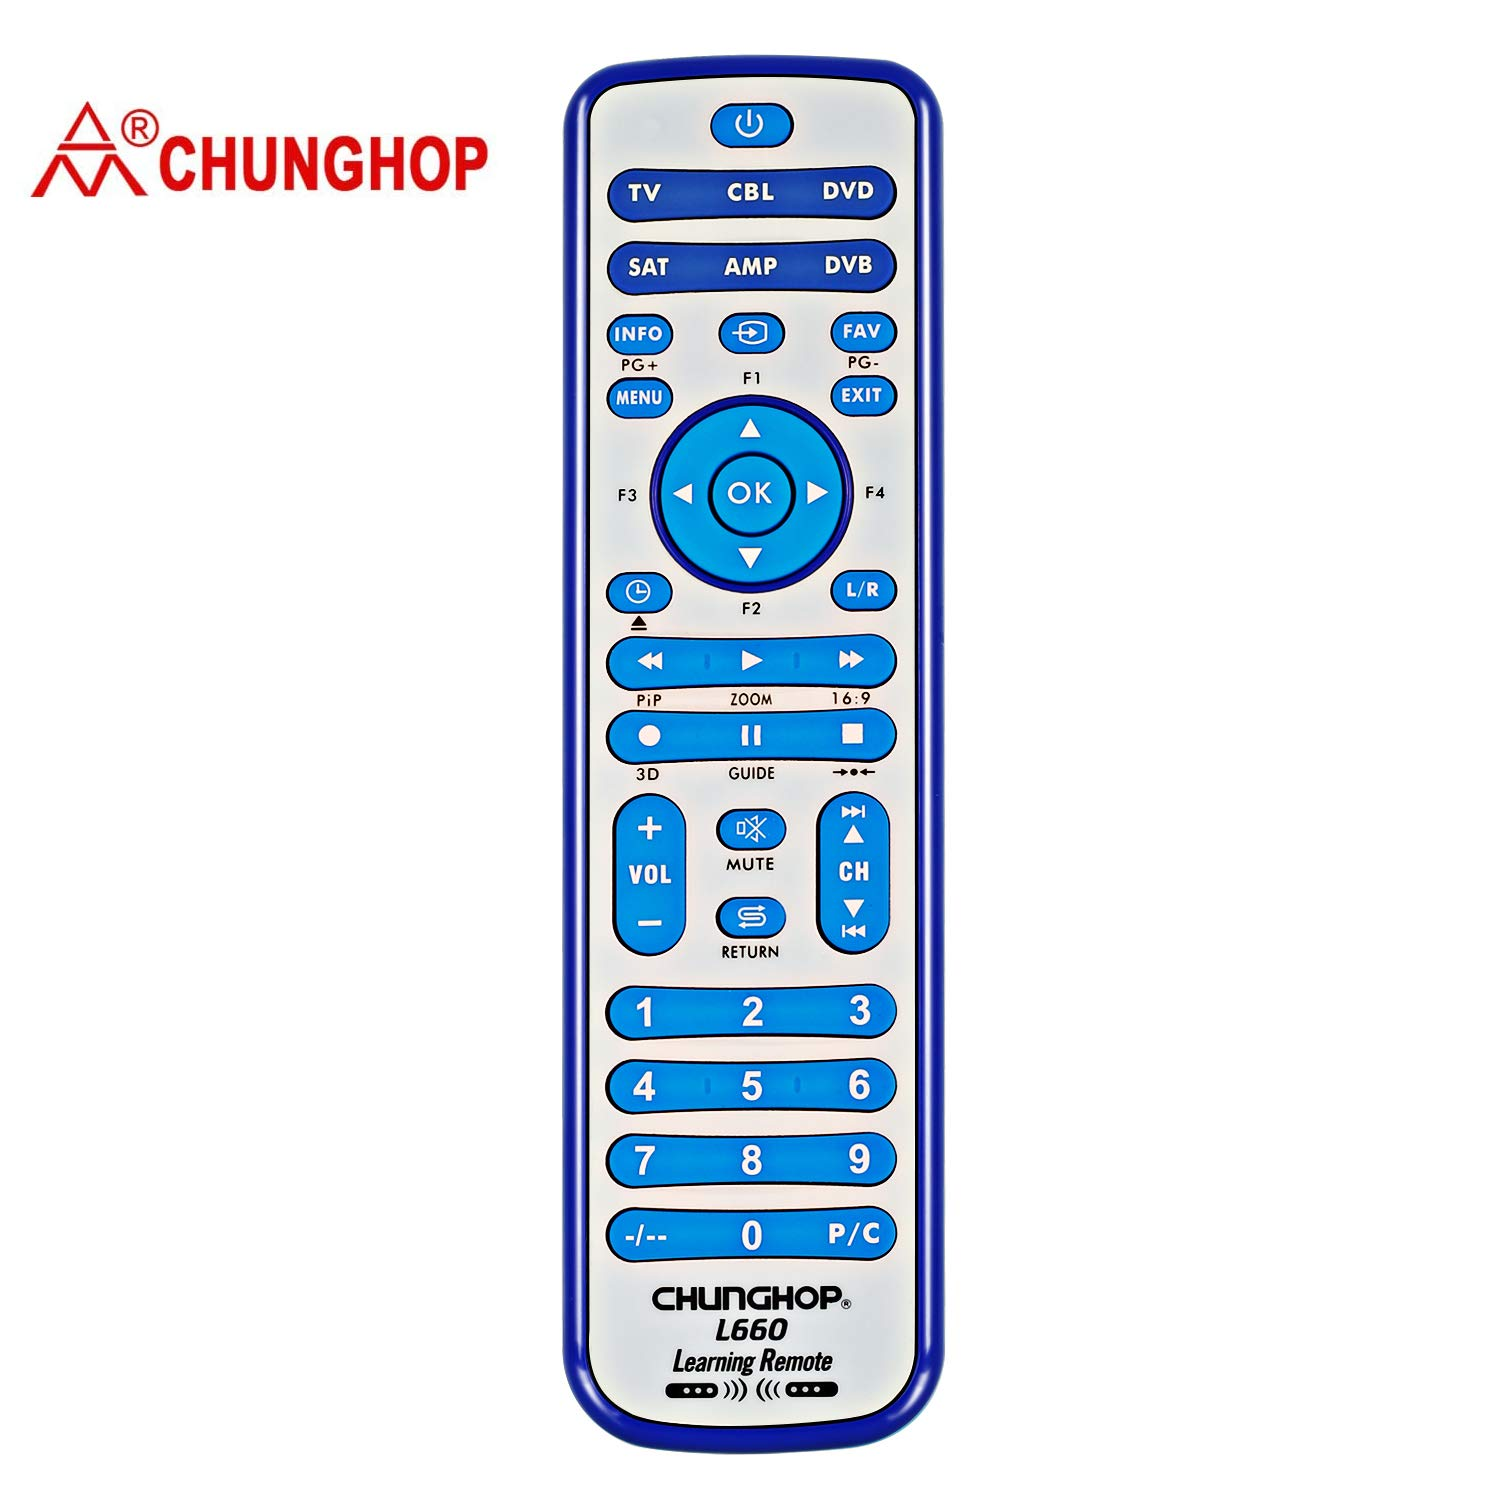 CHUNGHOP Universal IR Learning Remote Control for Smart TV VCR CBL DVD Sat STR-TV CD VCD HI-FI AMP 6 in 1 L660 Multifunctional Controller with programmable Function: Amazon.es: Electrónica